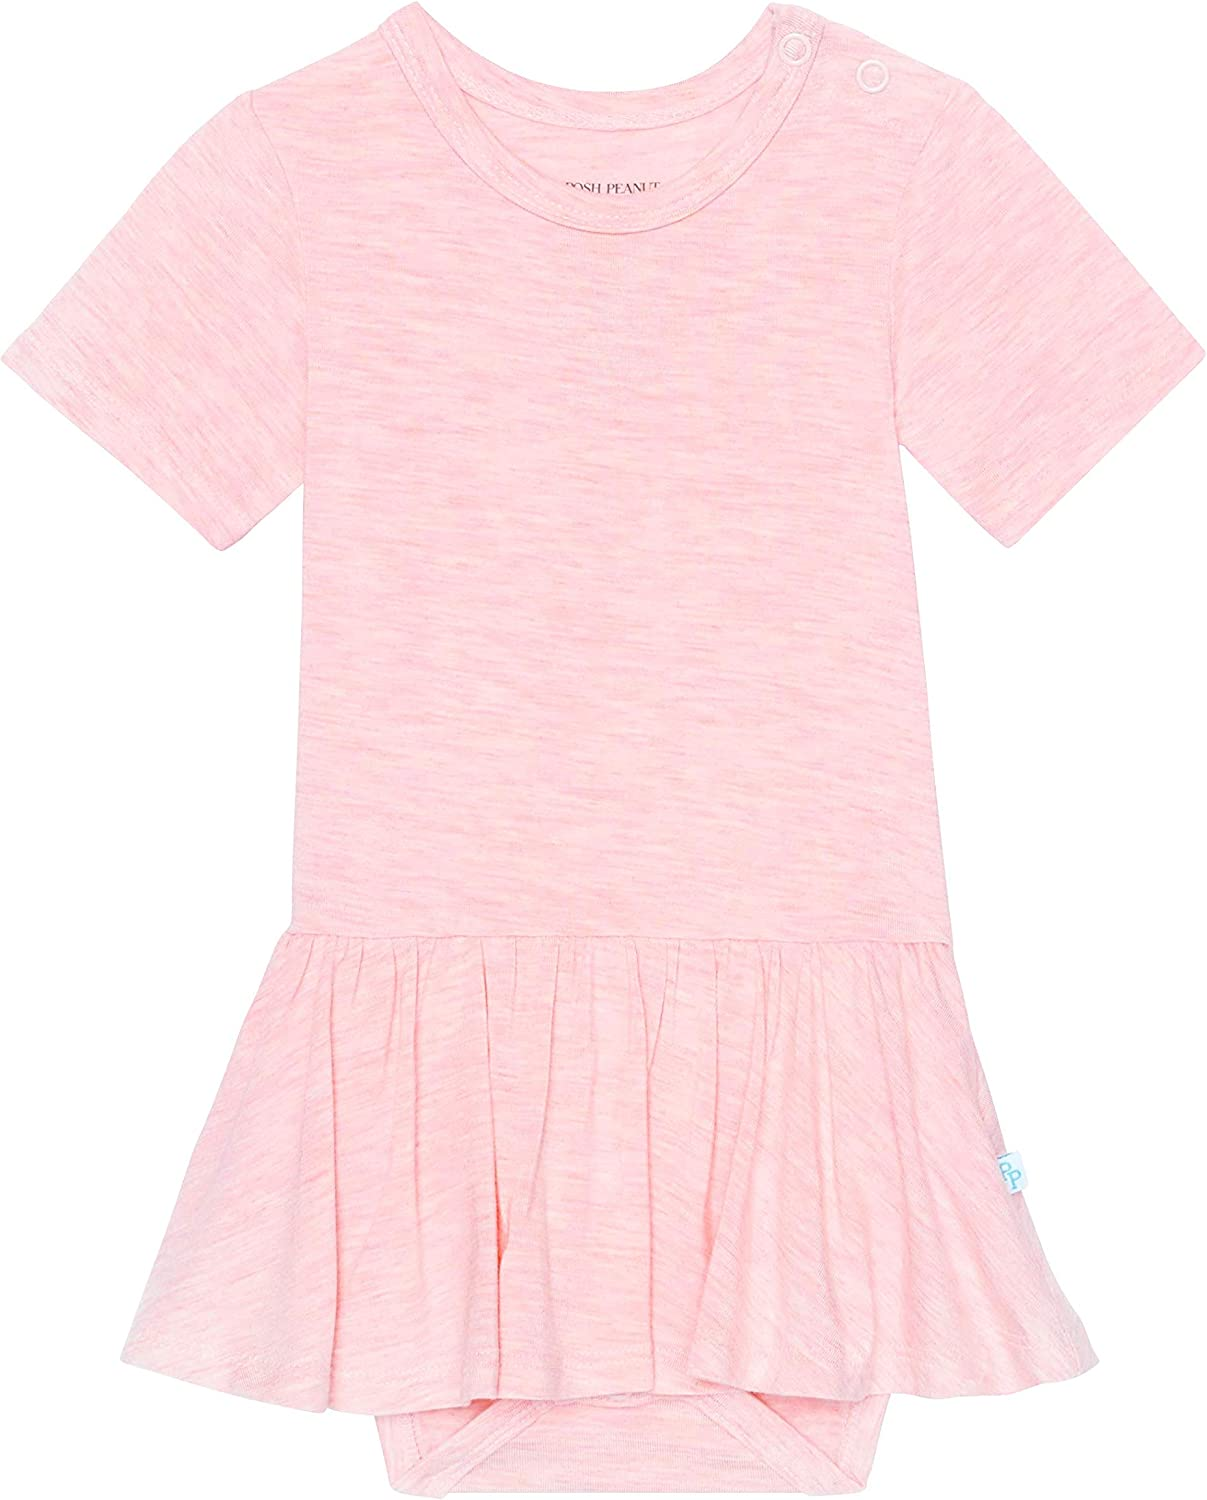 Posh Peanut Baby Twirl Skirt Finally popular brand Special price for a limited time Bodysuit Clothes Girl - Infant Vi